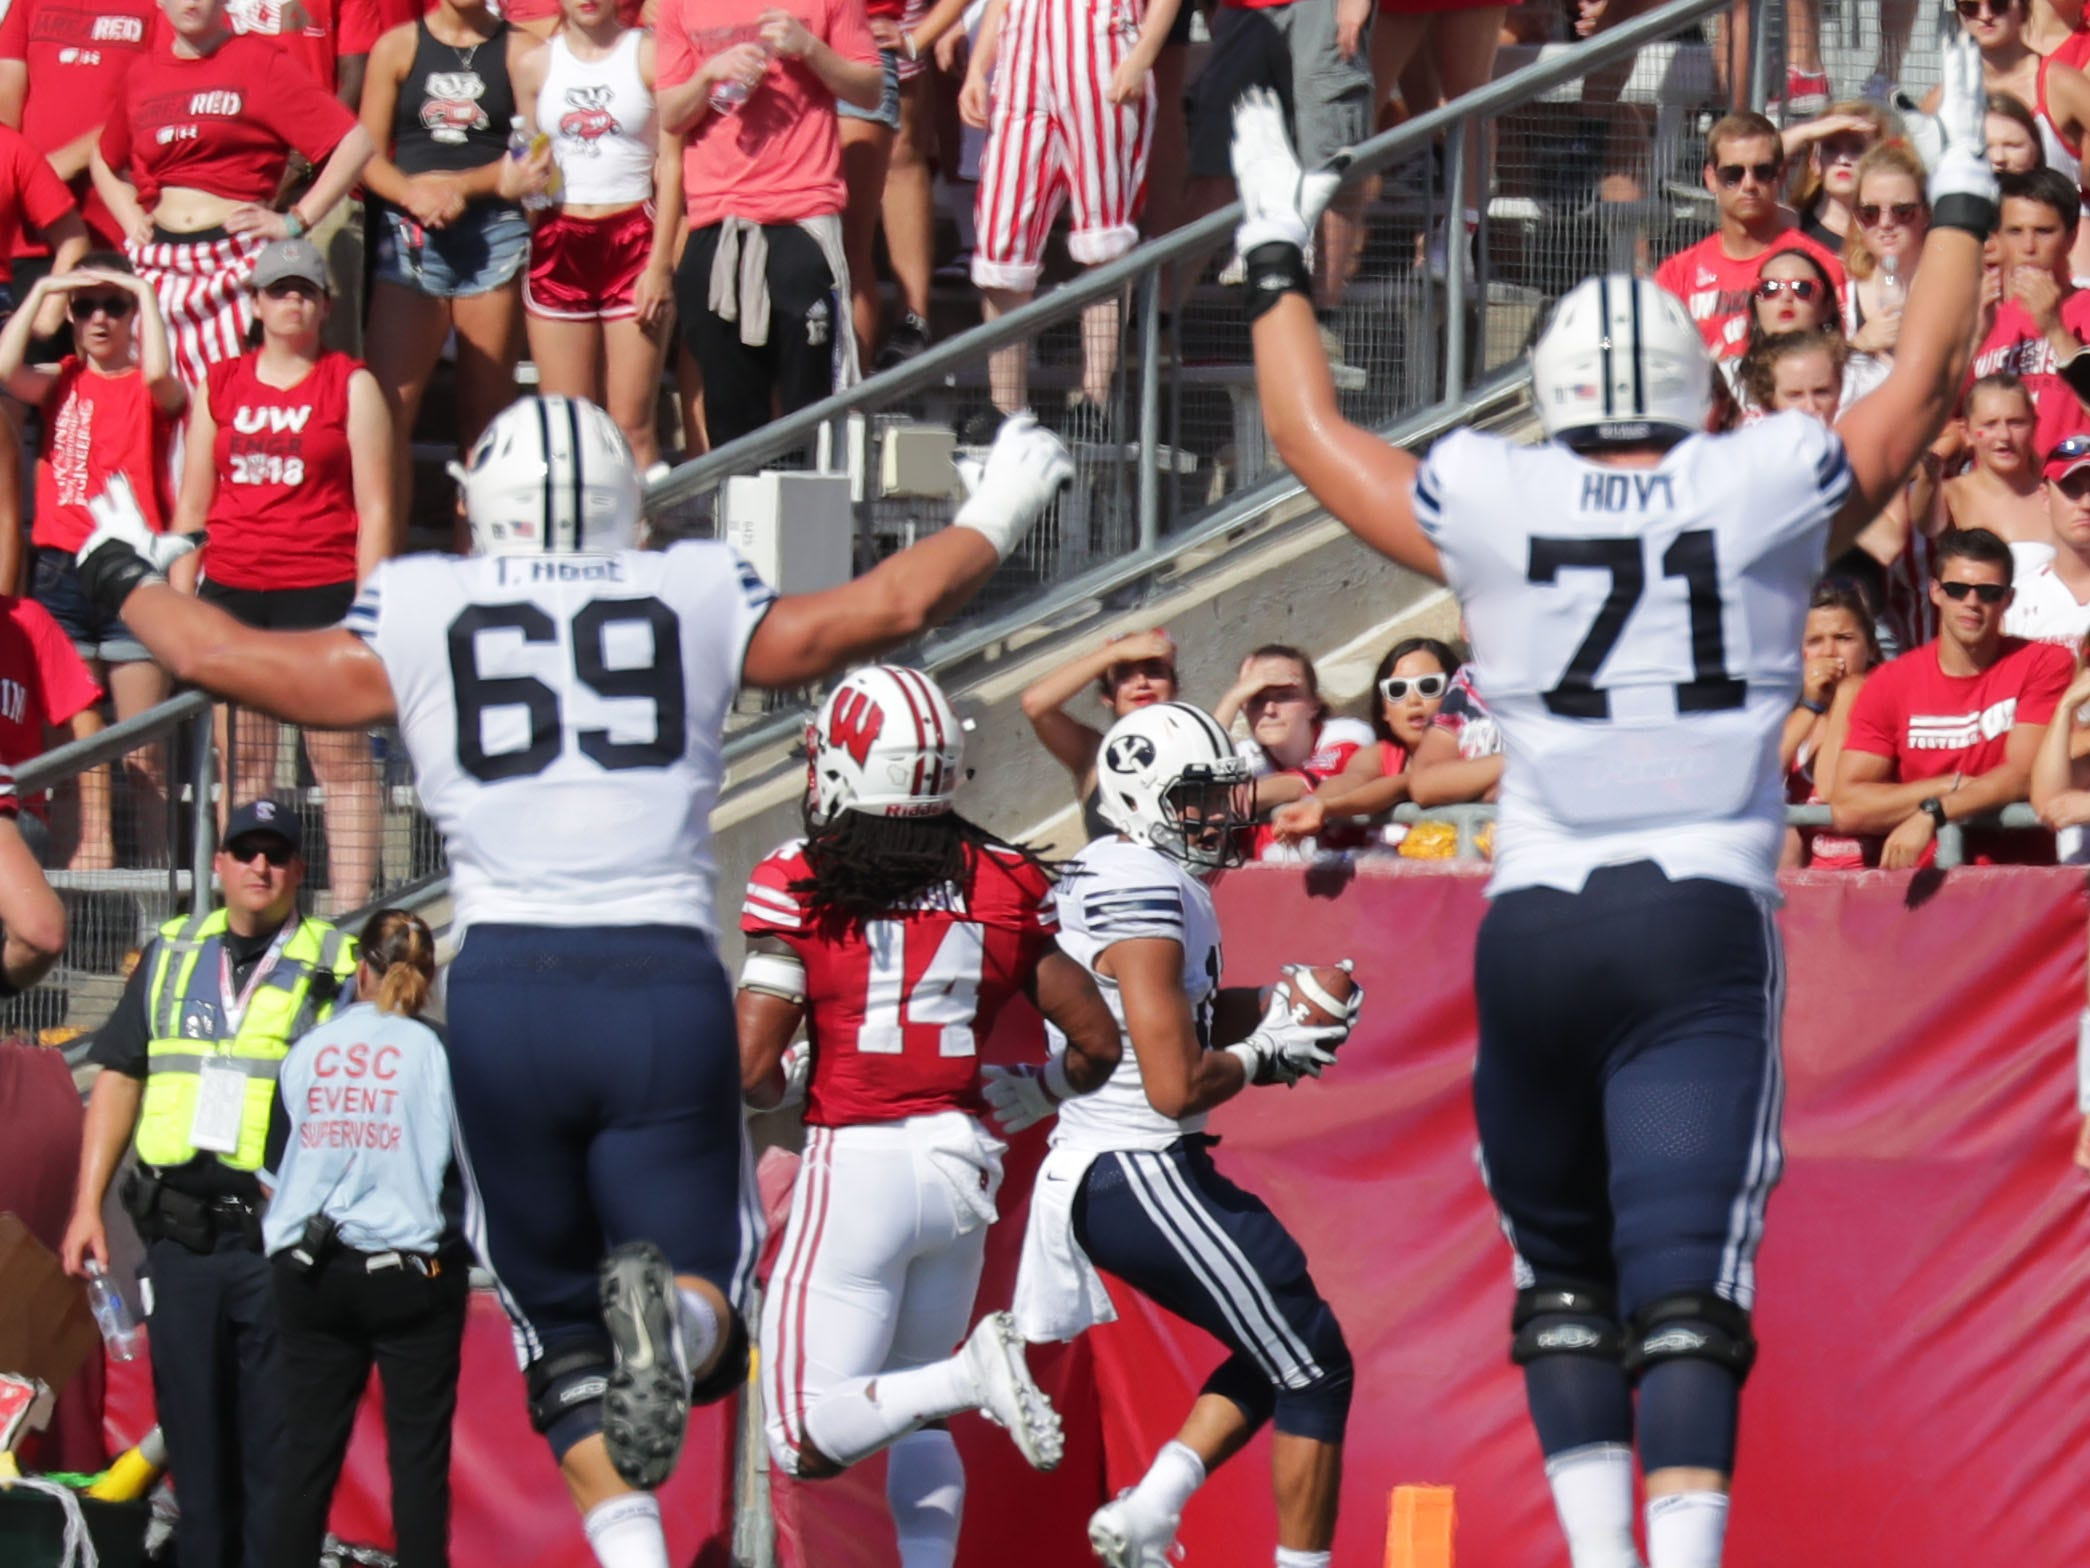 Members of the Brigham Young offensive line celebrate a touchdown catch by quarterback Stacy Conner during the first half.